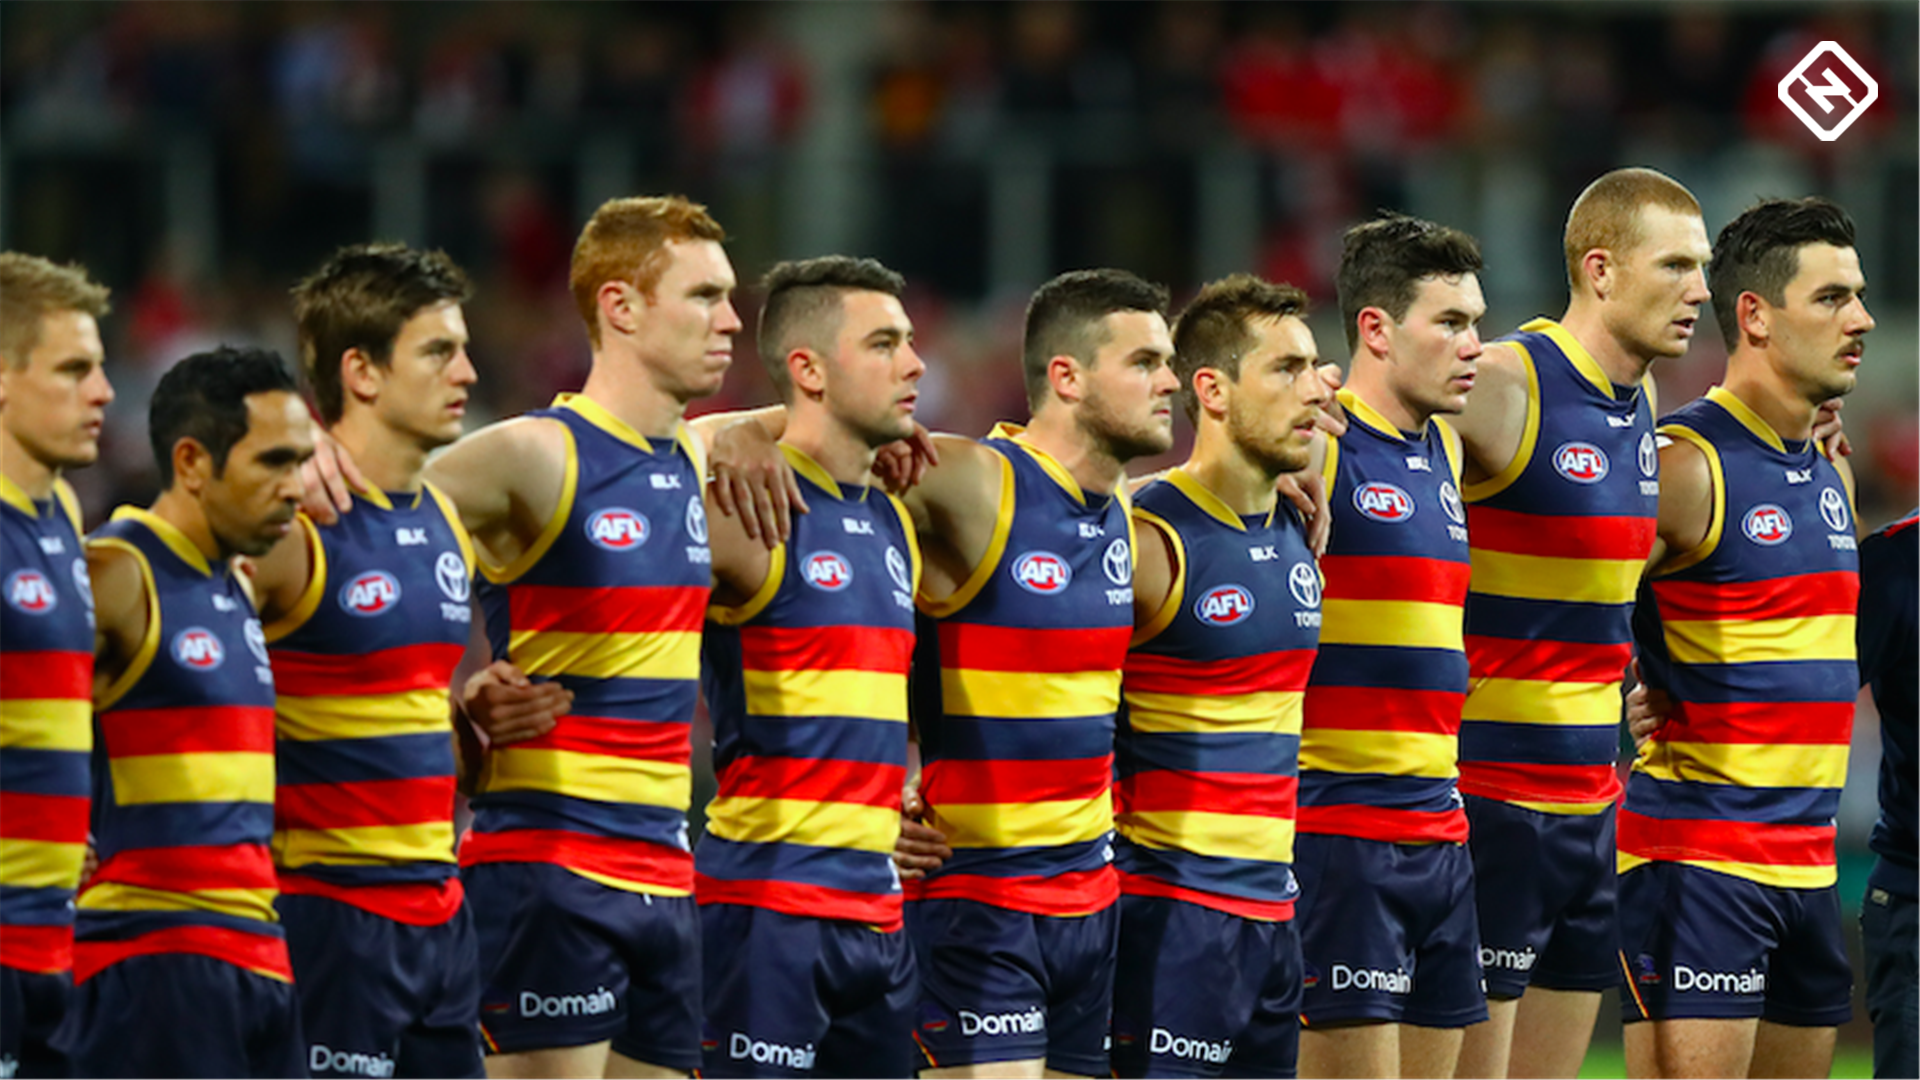 Adelaide should trade away one of their star midfielders, says Chris Judd